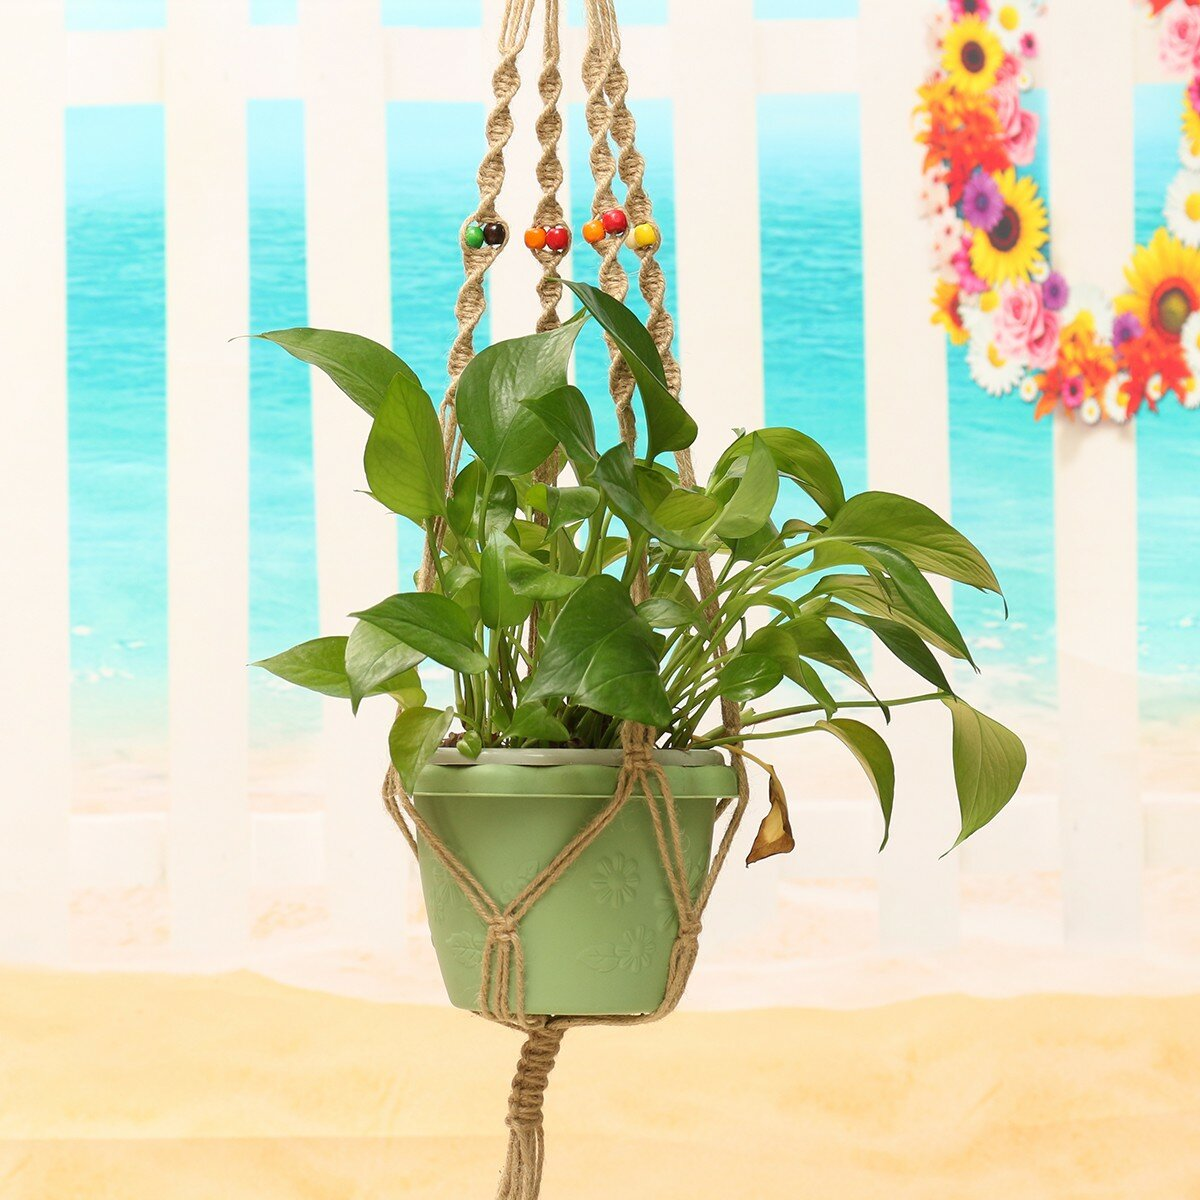 42 Inch Flowerpot Plant Hanger Macrame Jute Rope Indoor Outdoor Garden Decorative Cord with Hook